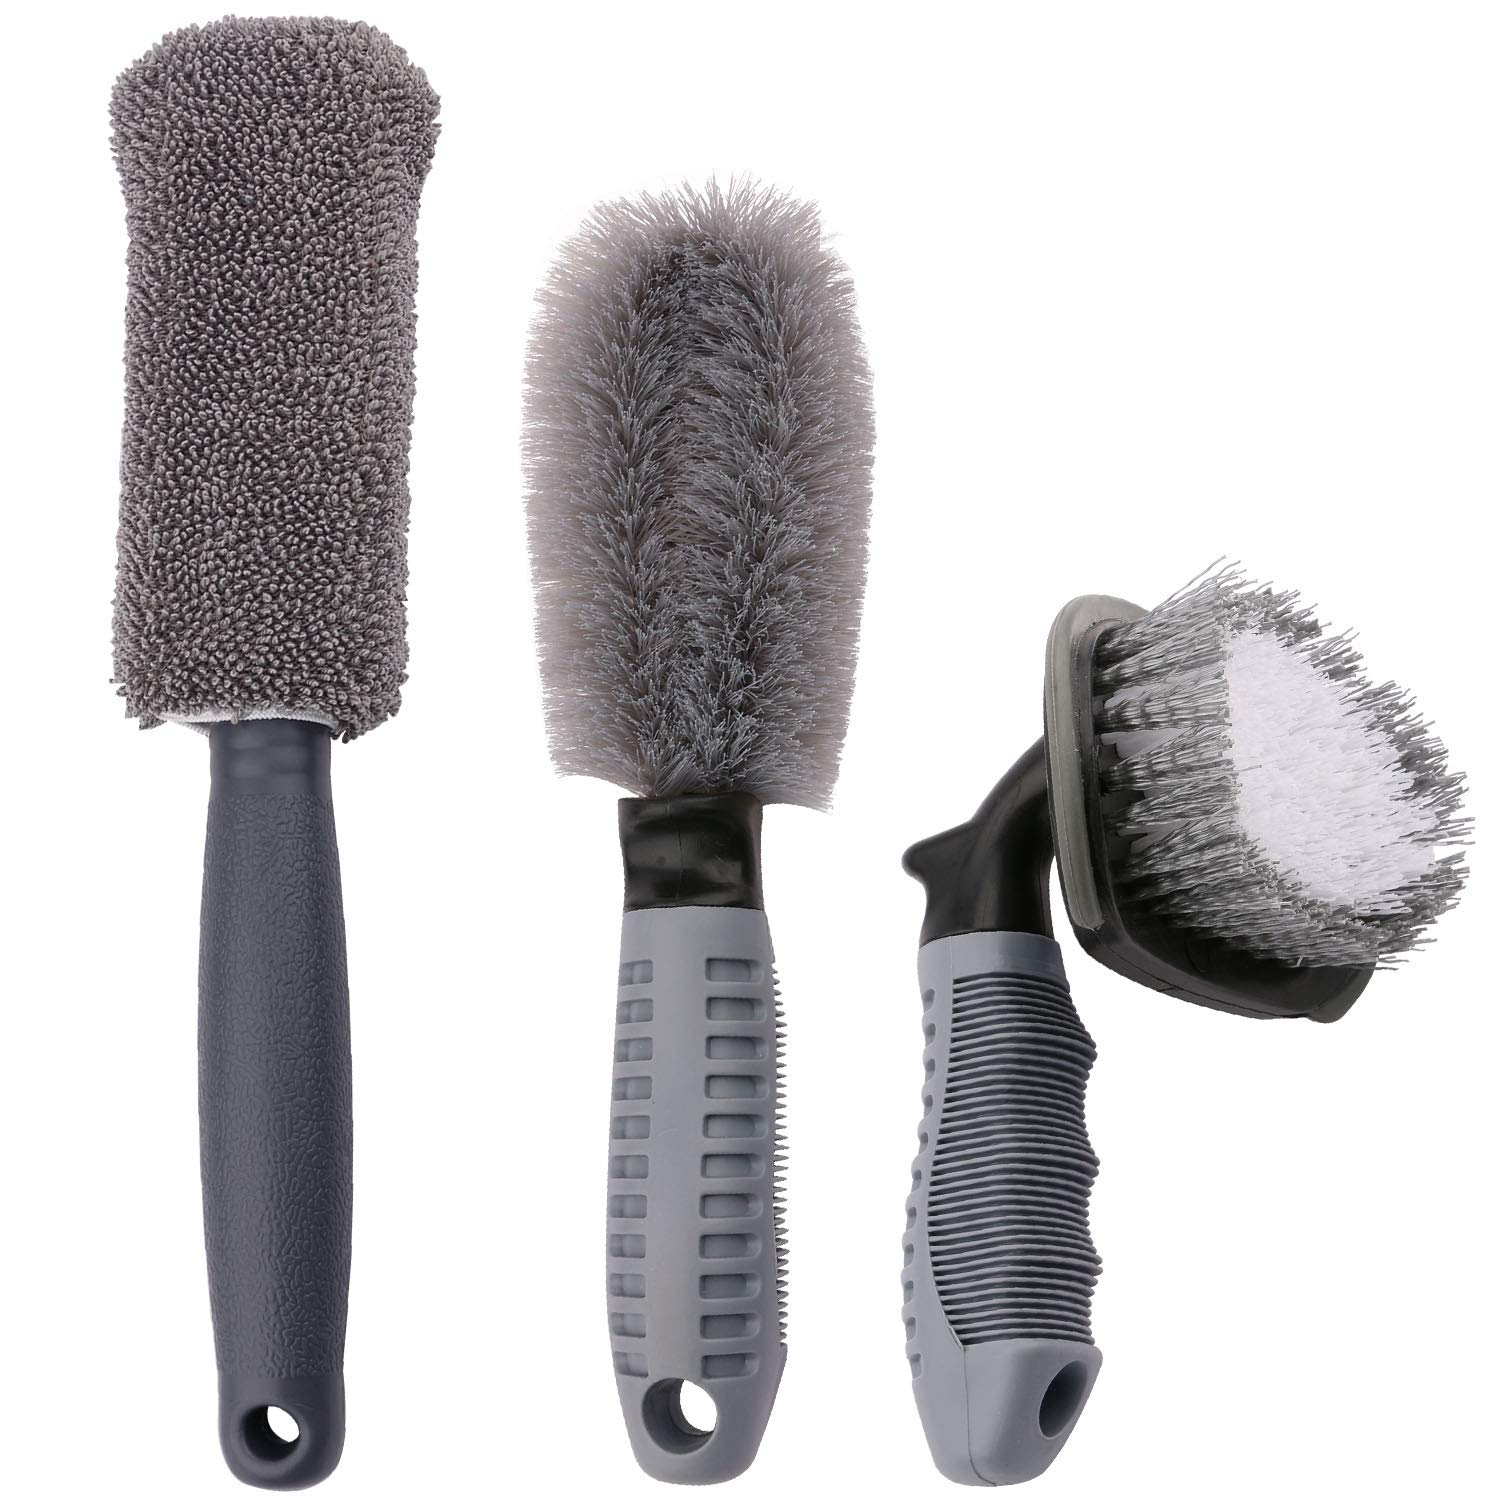 Sdootauto Car Wheel Cleaning Brush, 2 Pcs Tire Rim Scrub Brush and 1 Pcs Fiber Wheel Rim Brush for Auto Motorcycle Bike Wheel Cleaning